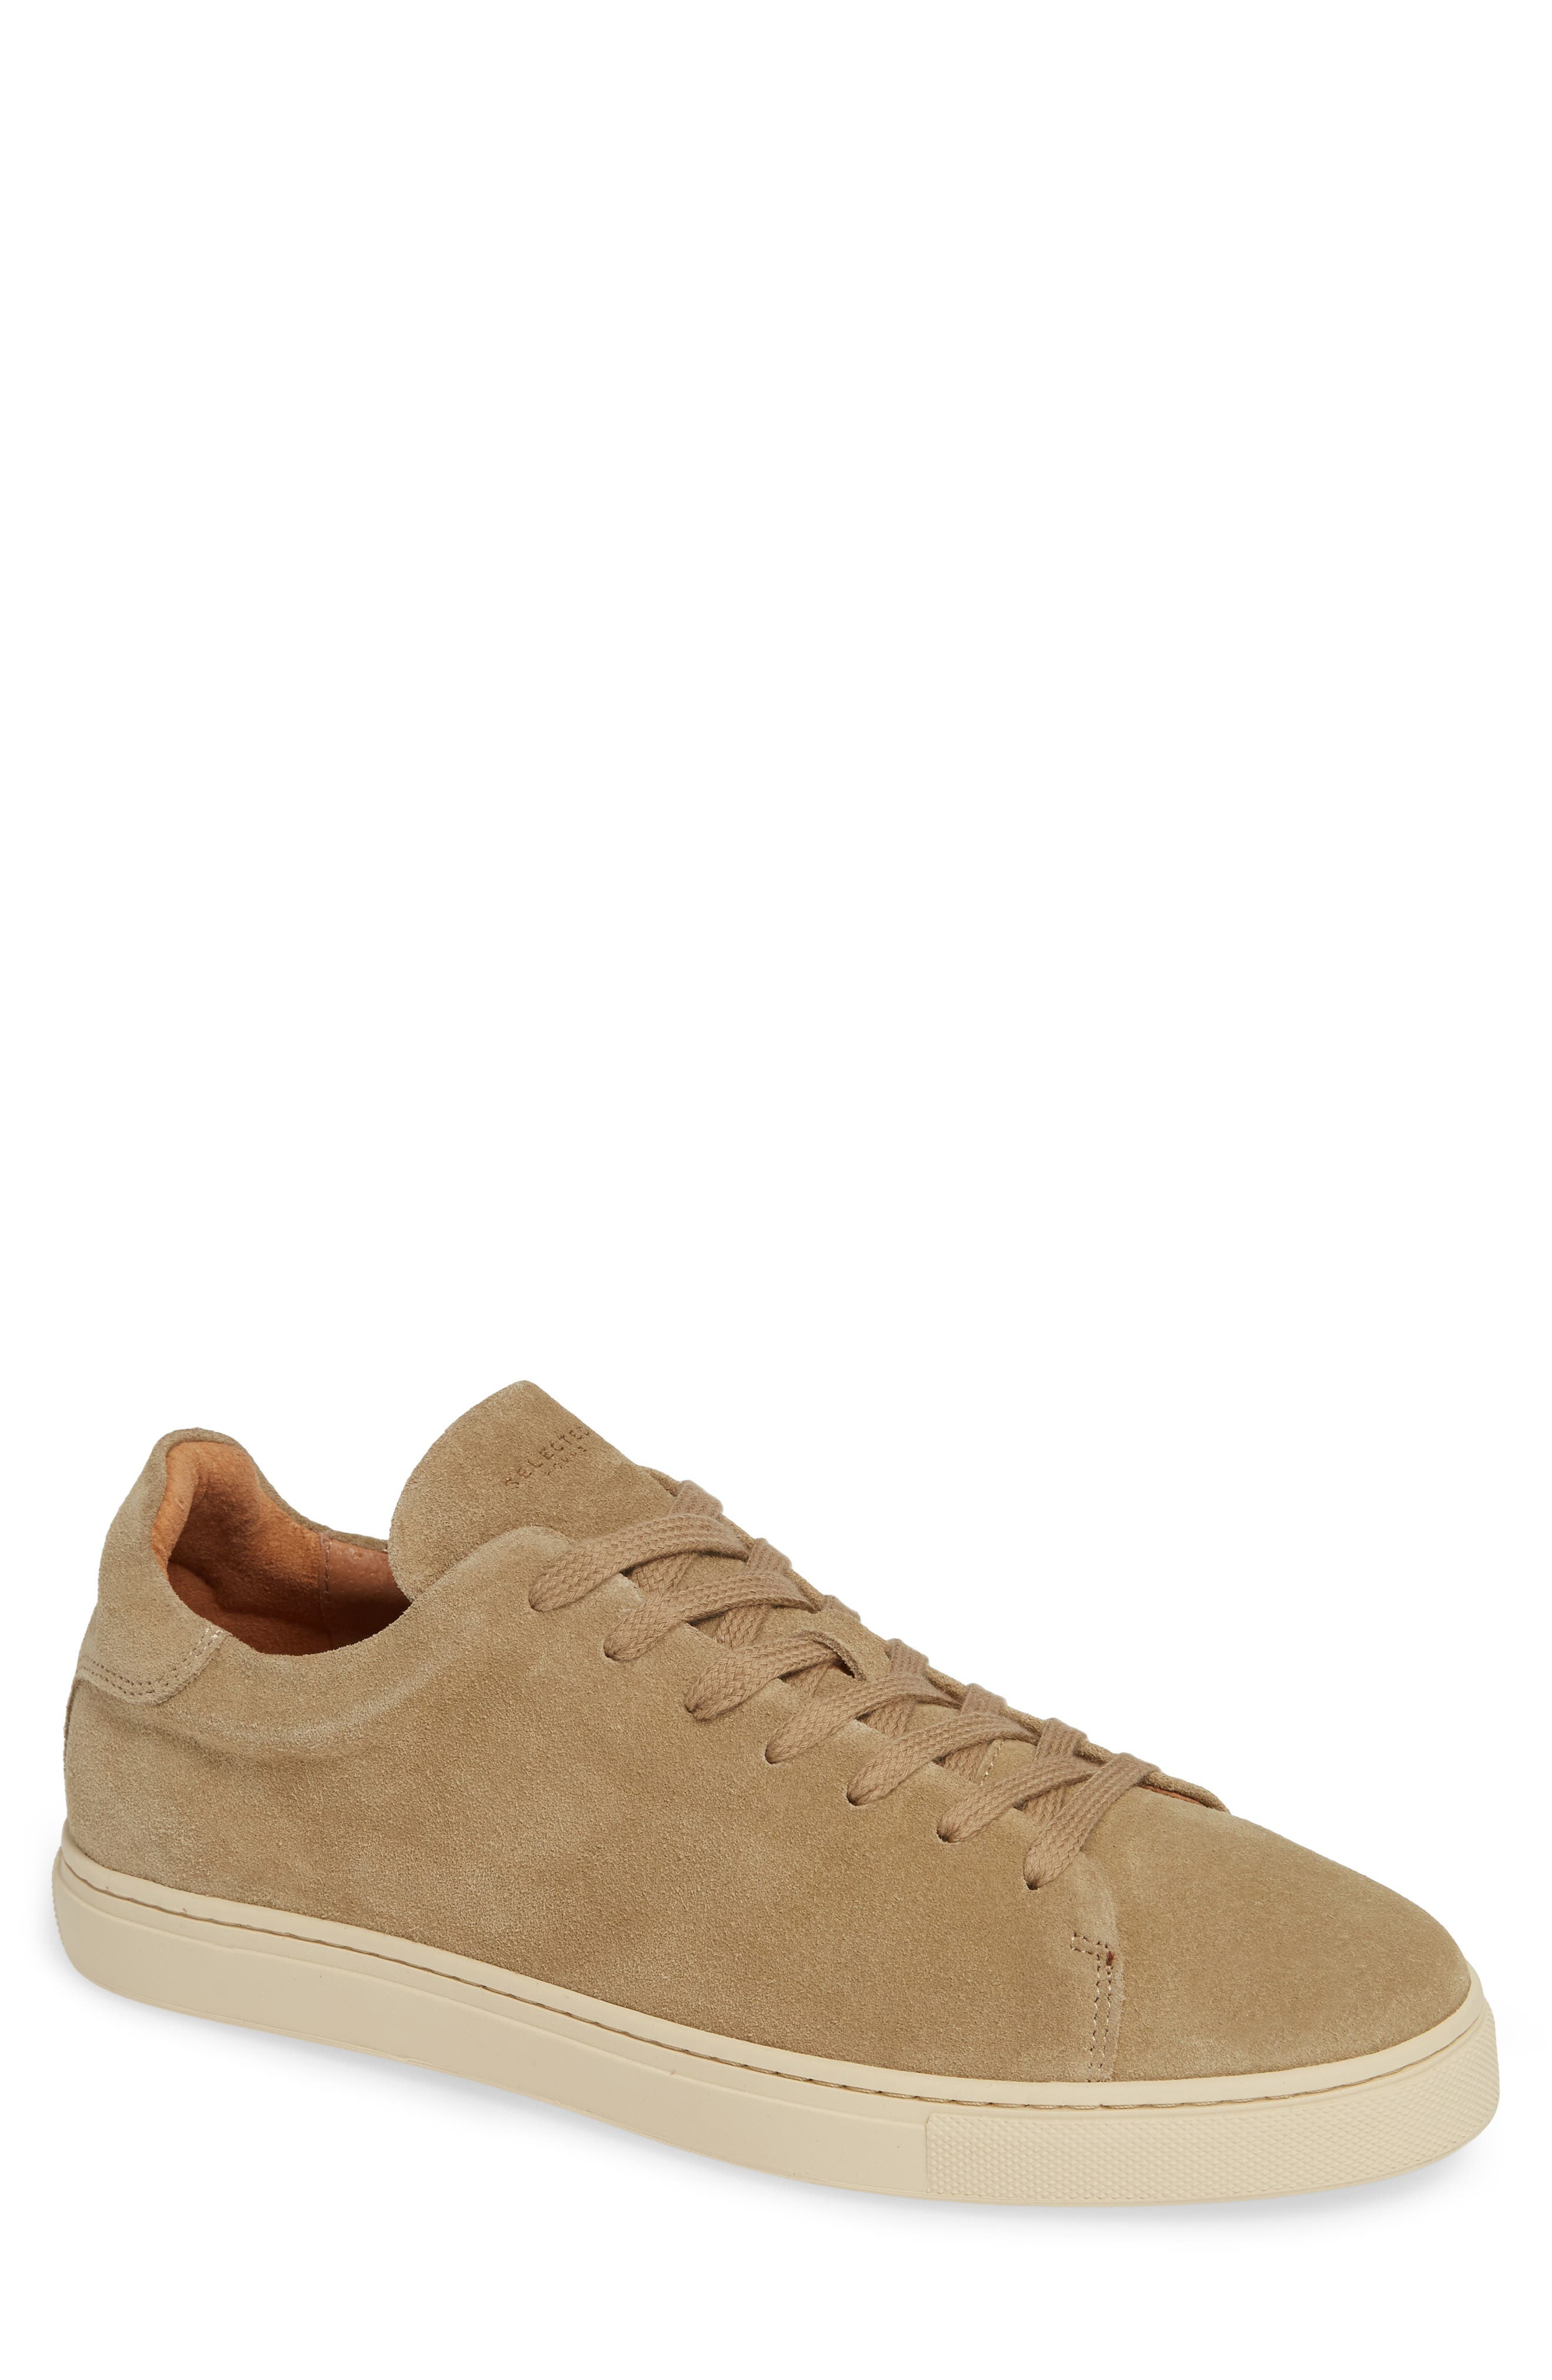 Selected Home David Low Top Sneaker,                             Main thumbnail 1, color,                             SAND SUEDE